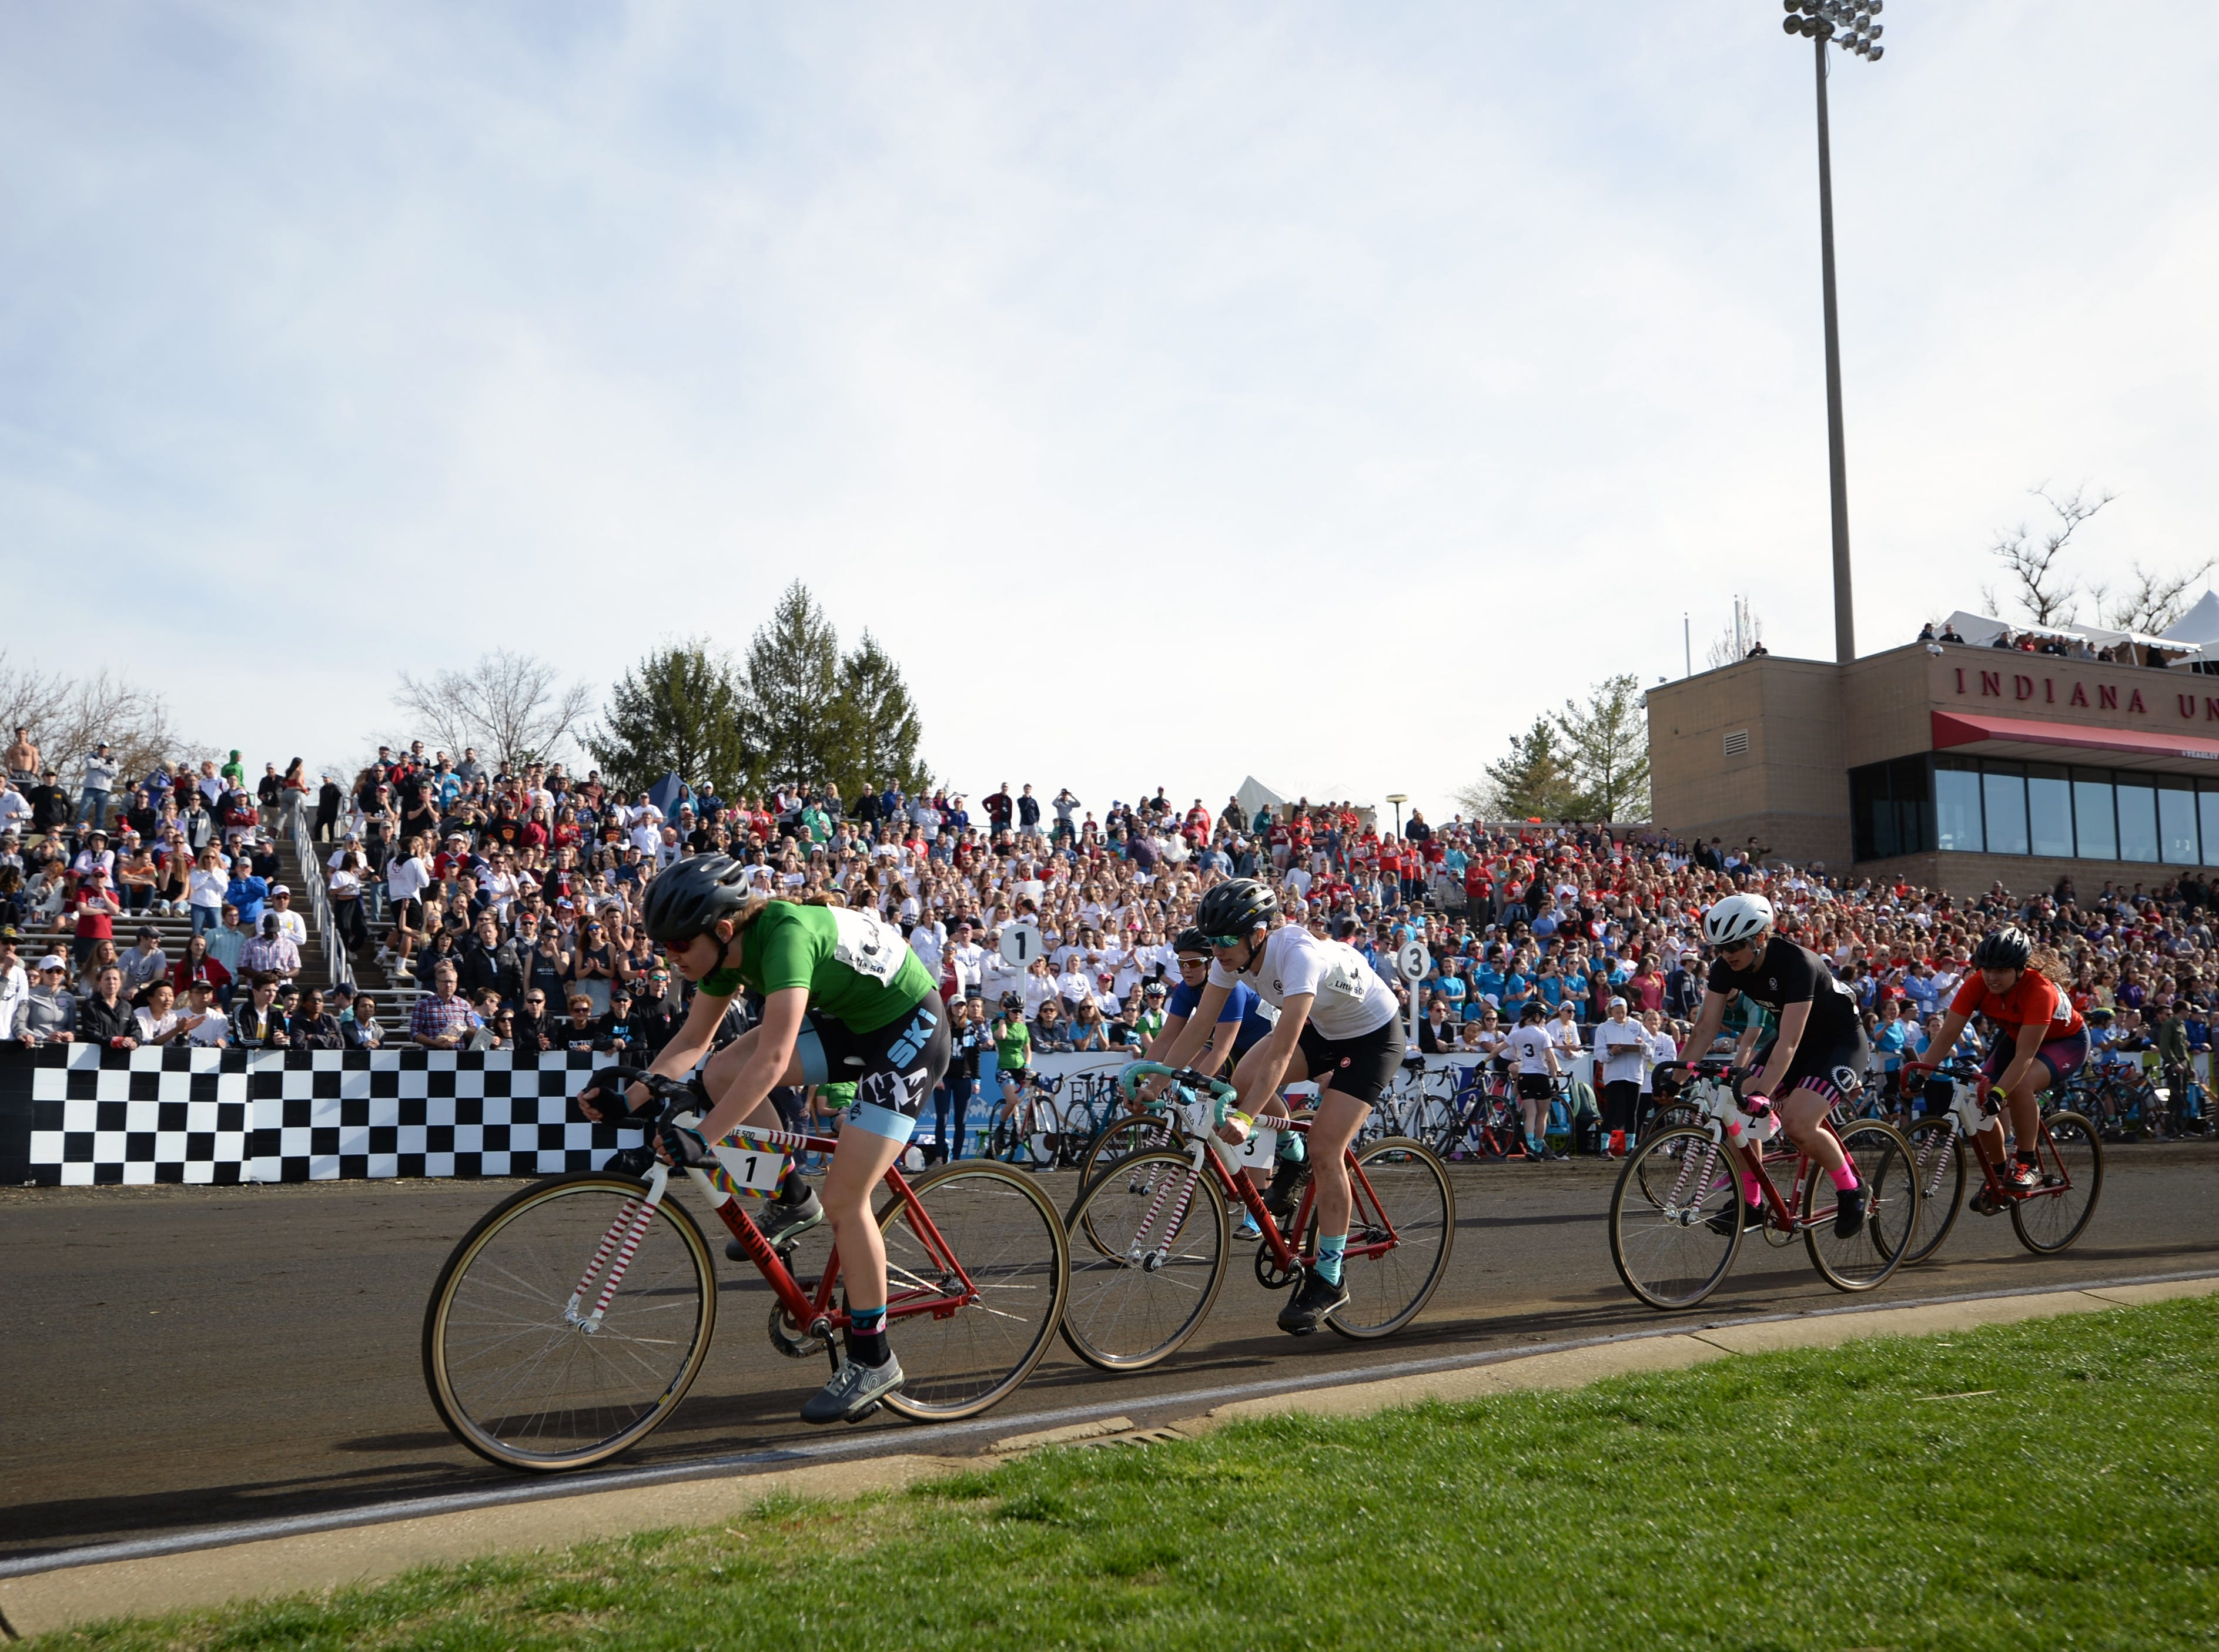 The lead pack during the women's Little 500 at Bill Armstrong Stadium in Bloomington, Ind., on Friday, April 12, 2019.